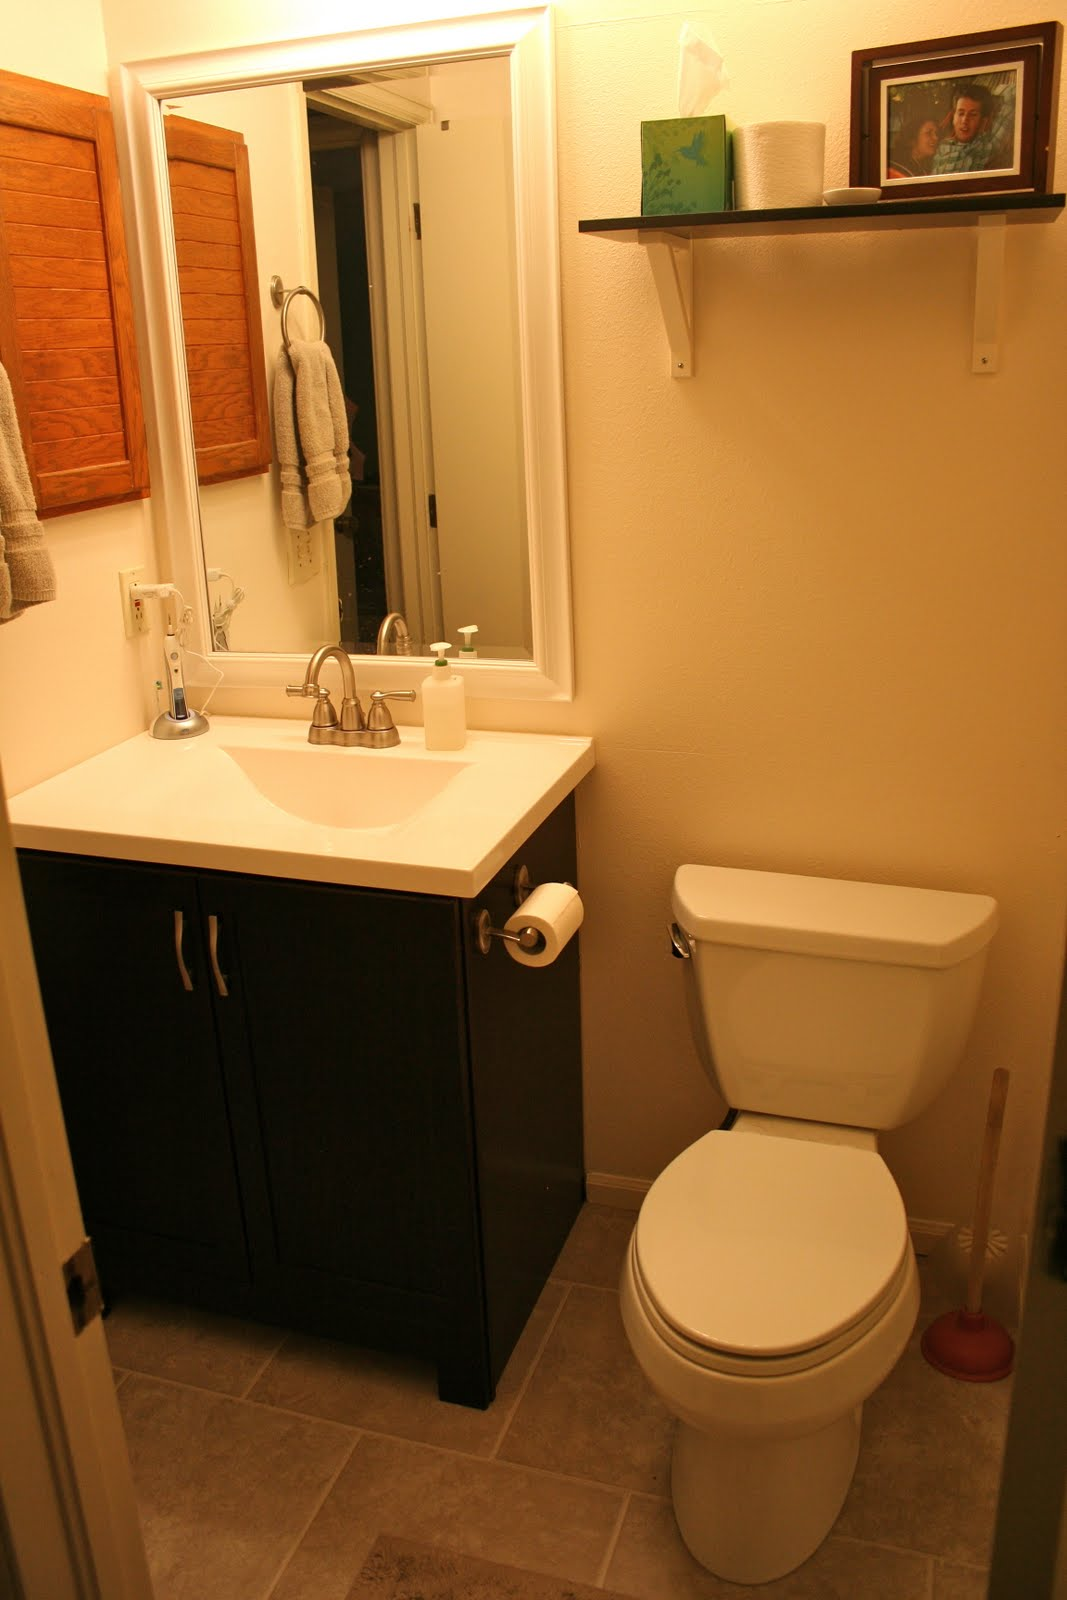 Things we swear happened diy bathroom remodel - Diy bathroom remodel before and after ...